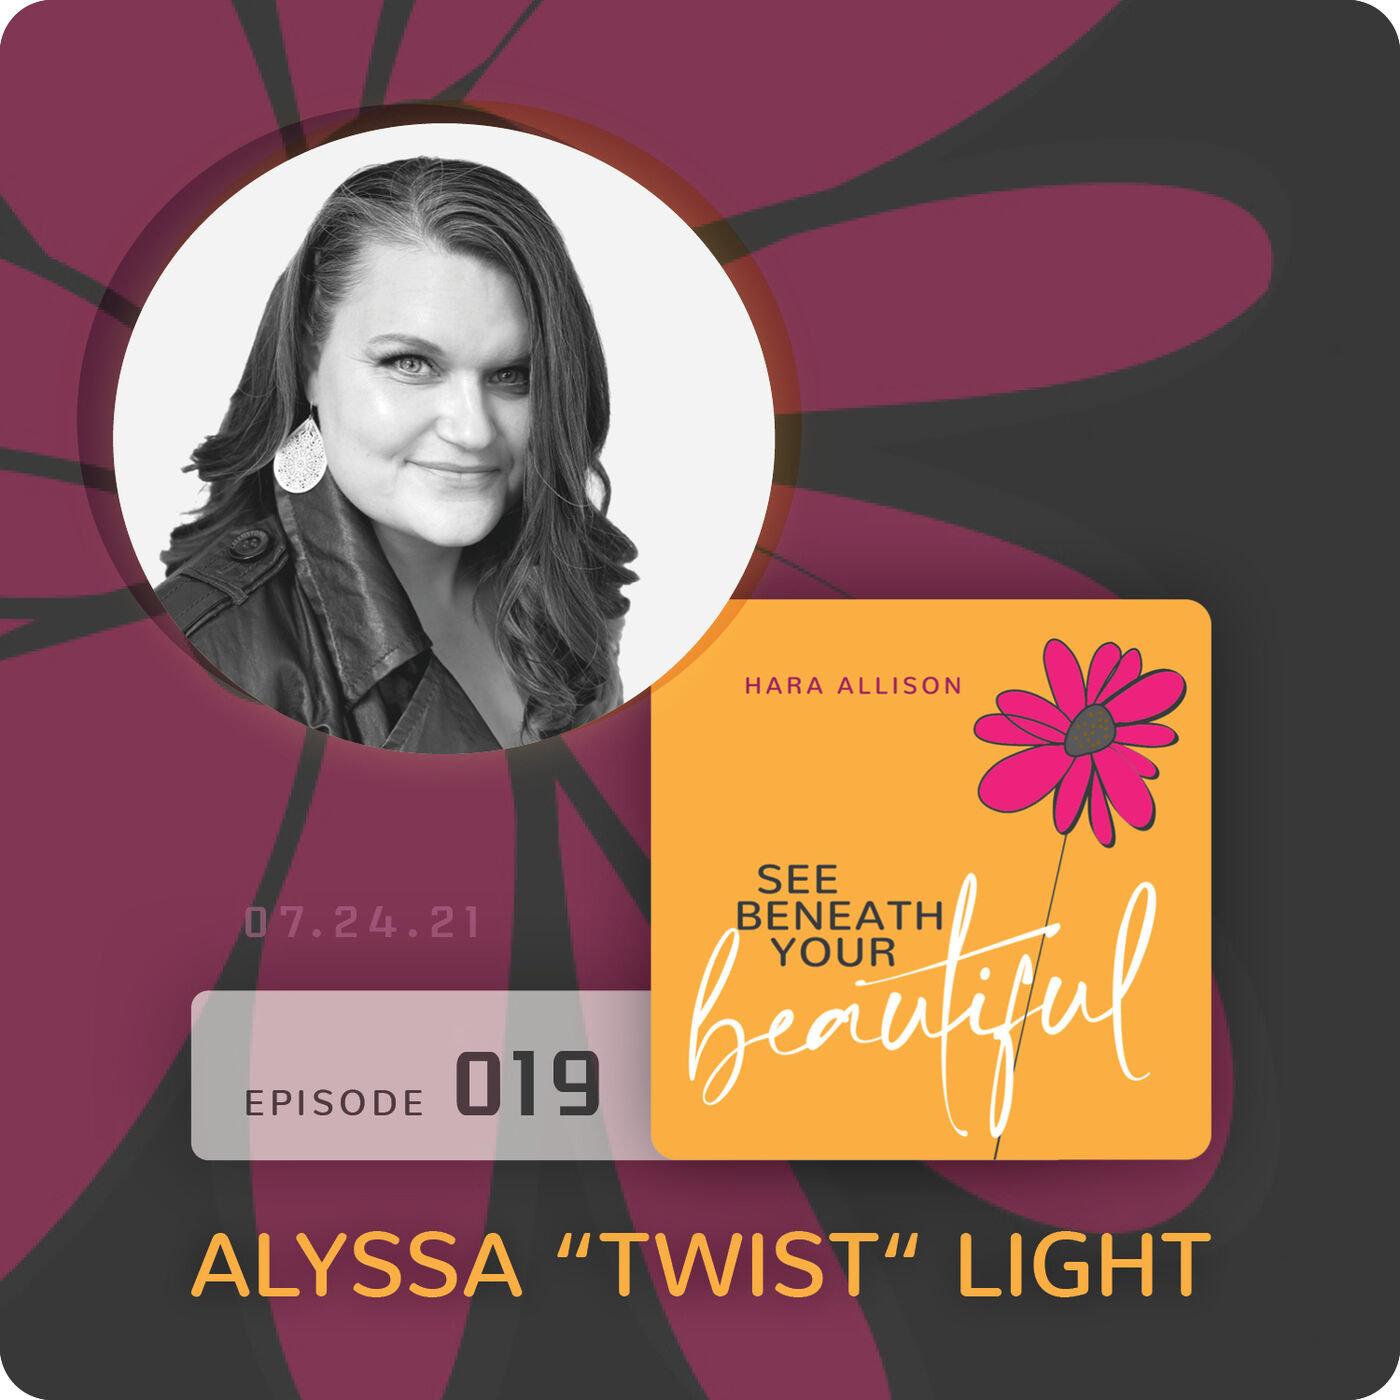 """019. Alyssa """"Twist"""" Light discusses being an ex-evangelical homophobe, fostering t(w)eens, providing respite care, embracing differences and disabilities, using language intentionally, and willingly suffering discomfort to learn"""